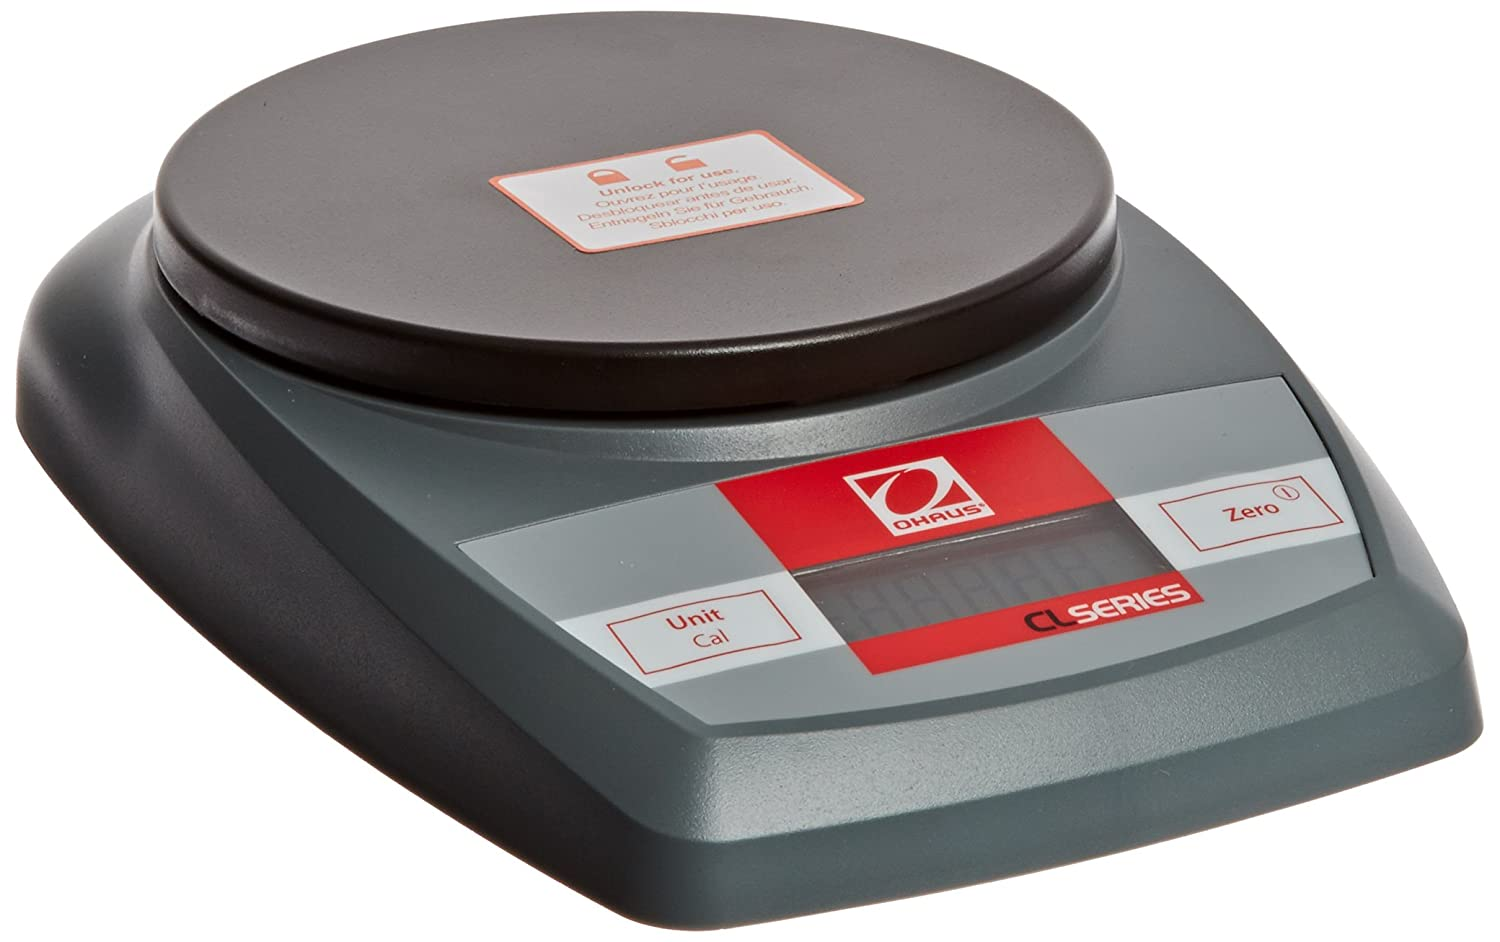 0.1g Readability Ohaus CL201 CL Series Portable Compact Scales 200g Capacity